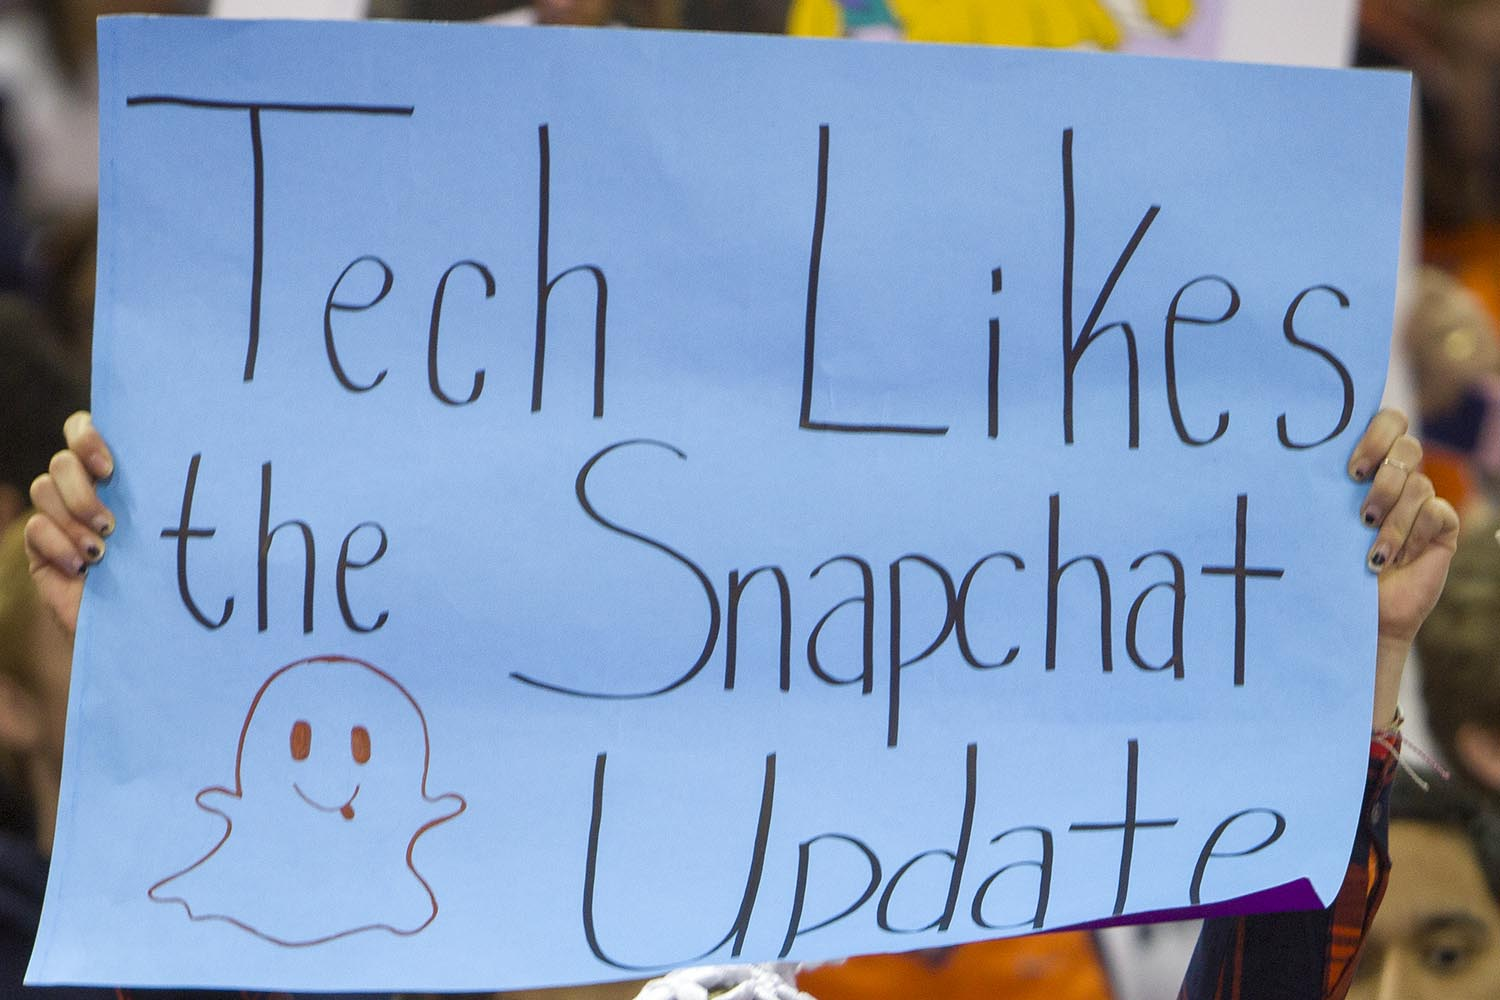 """Sign reading """"Tech likes the new Snapchat update"""""""